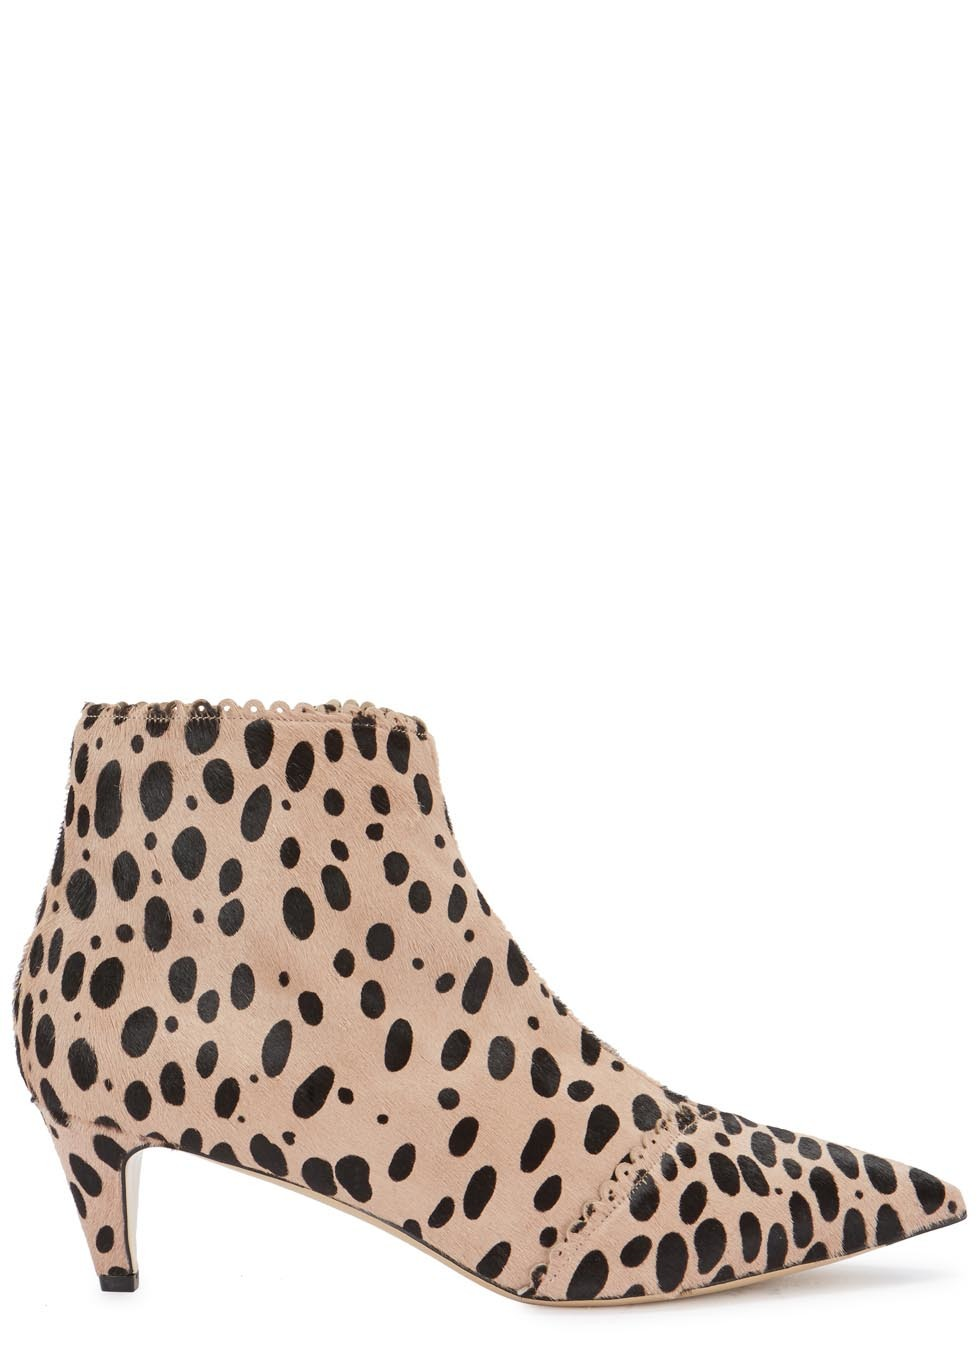 Luna Cheetah Print Calf Hair Ankle Boots - predominant colour: camel; secondary colour: black; occasions: casual, creative work; material: animal skin; heel height: mid; heel: standard; toe: pointed toe; boot length: ankle boot; style: standard; finish: plain; pattern: animal print; season: a/w 2015; wardrobe: highlight